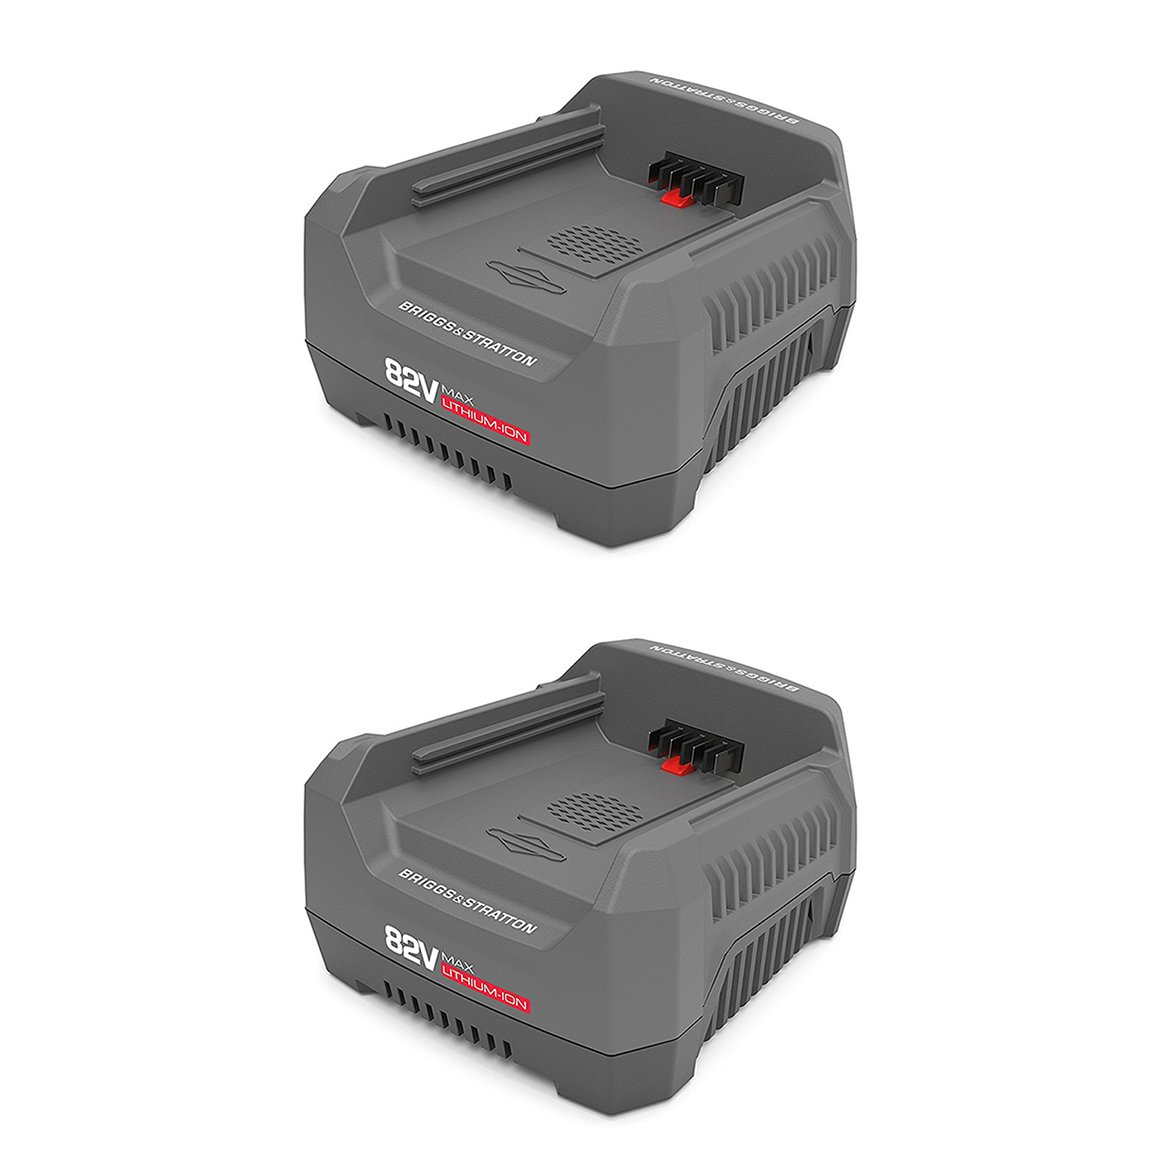 Snapper 82V Lithium-Ion Rapid Battery Charger for XD Cordless Tools (2 Pack)